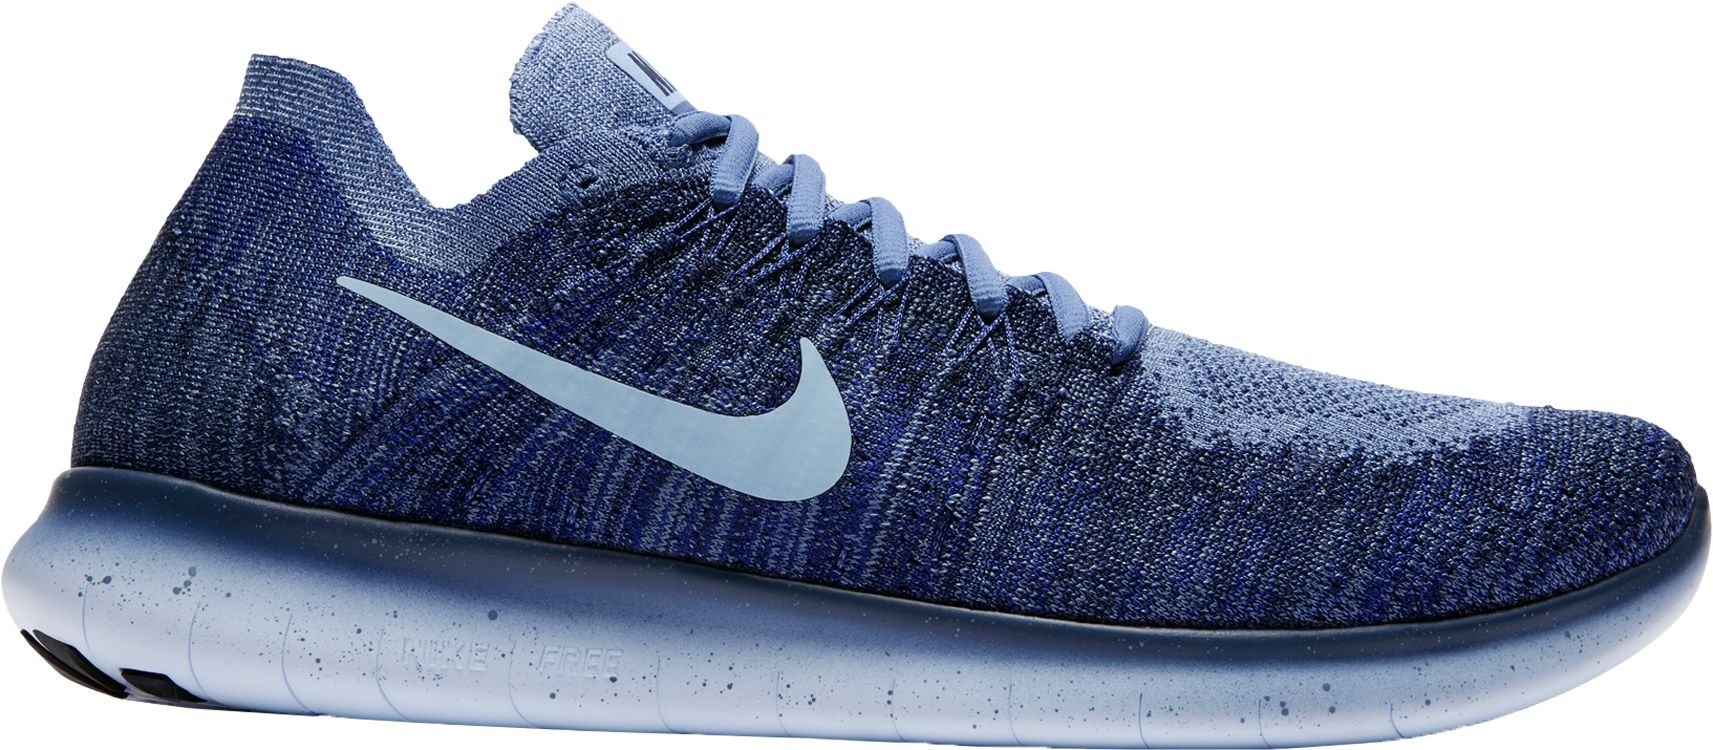 Hombres Nike Libre Rn Flyknit 2017 9OpNdty0